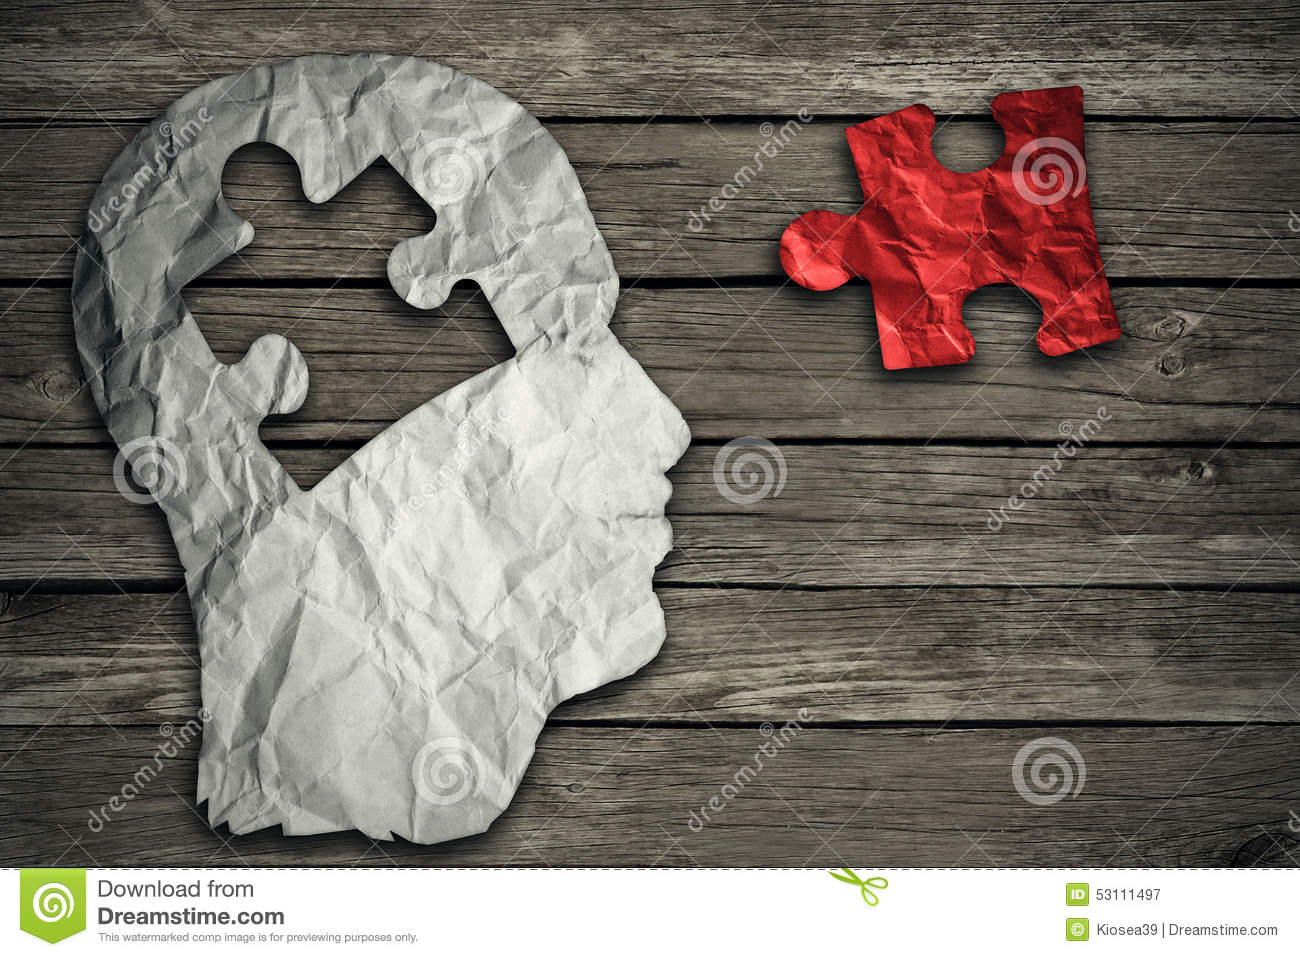 brain essay how technology affects the brain modern technology has been proven by scientists to affect the human brain both positively and